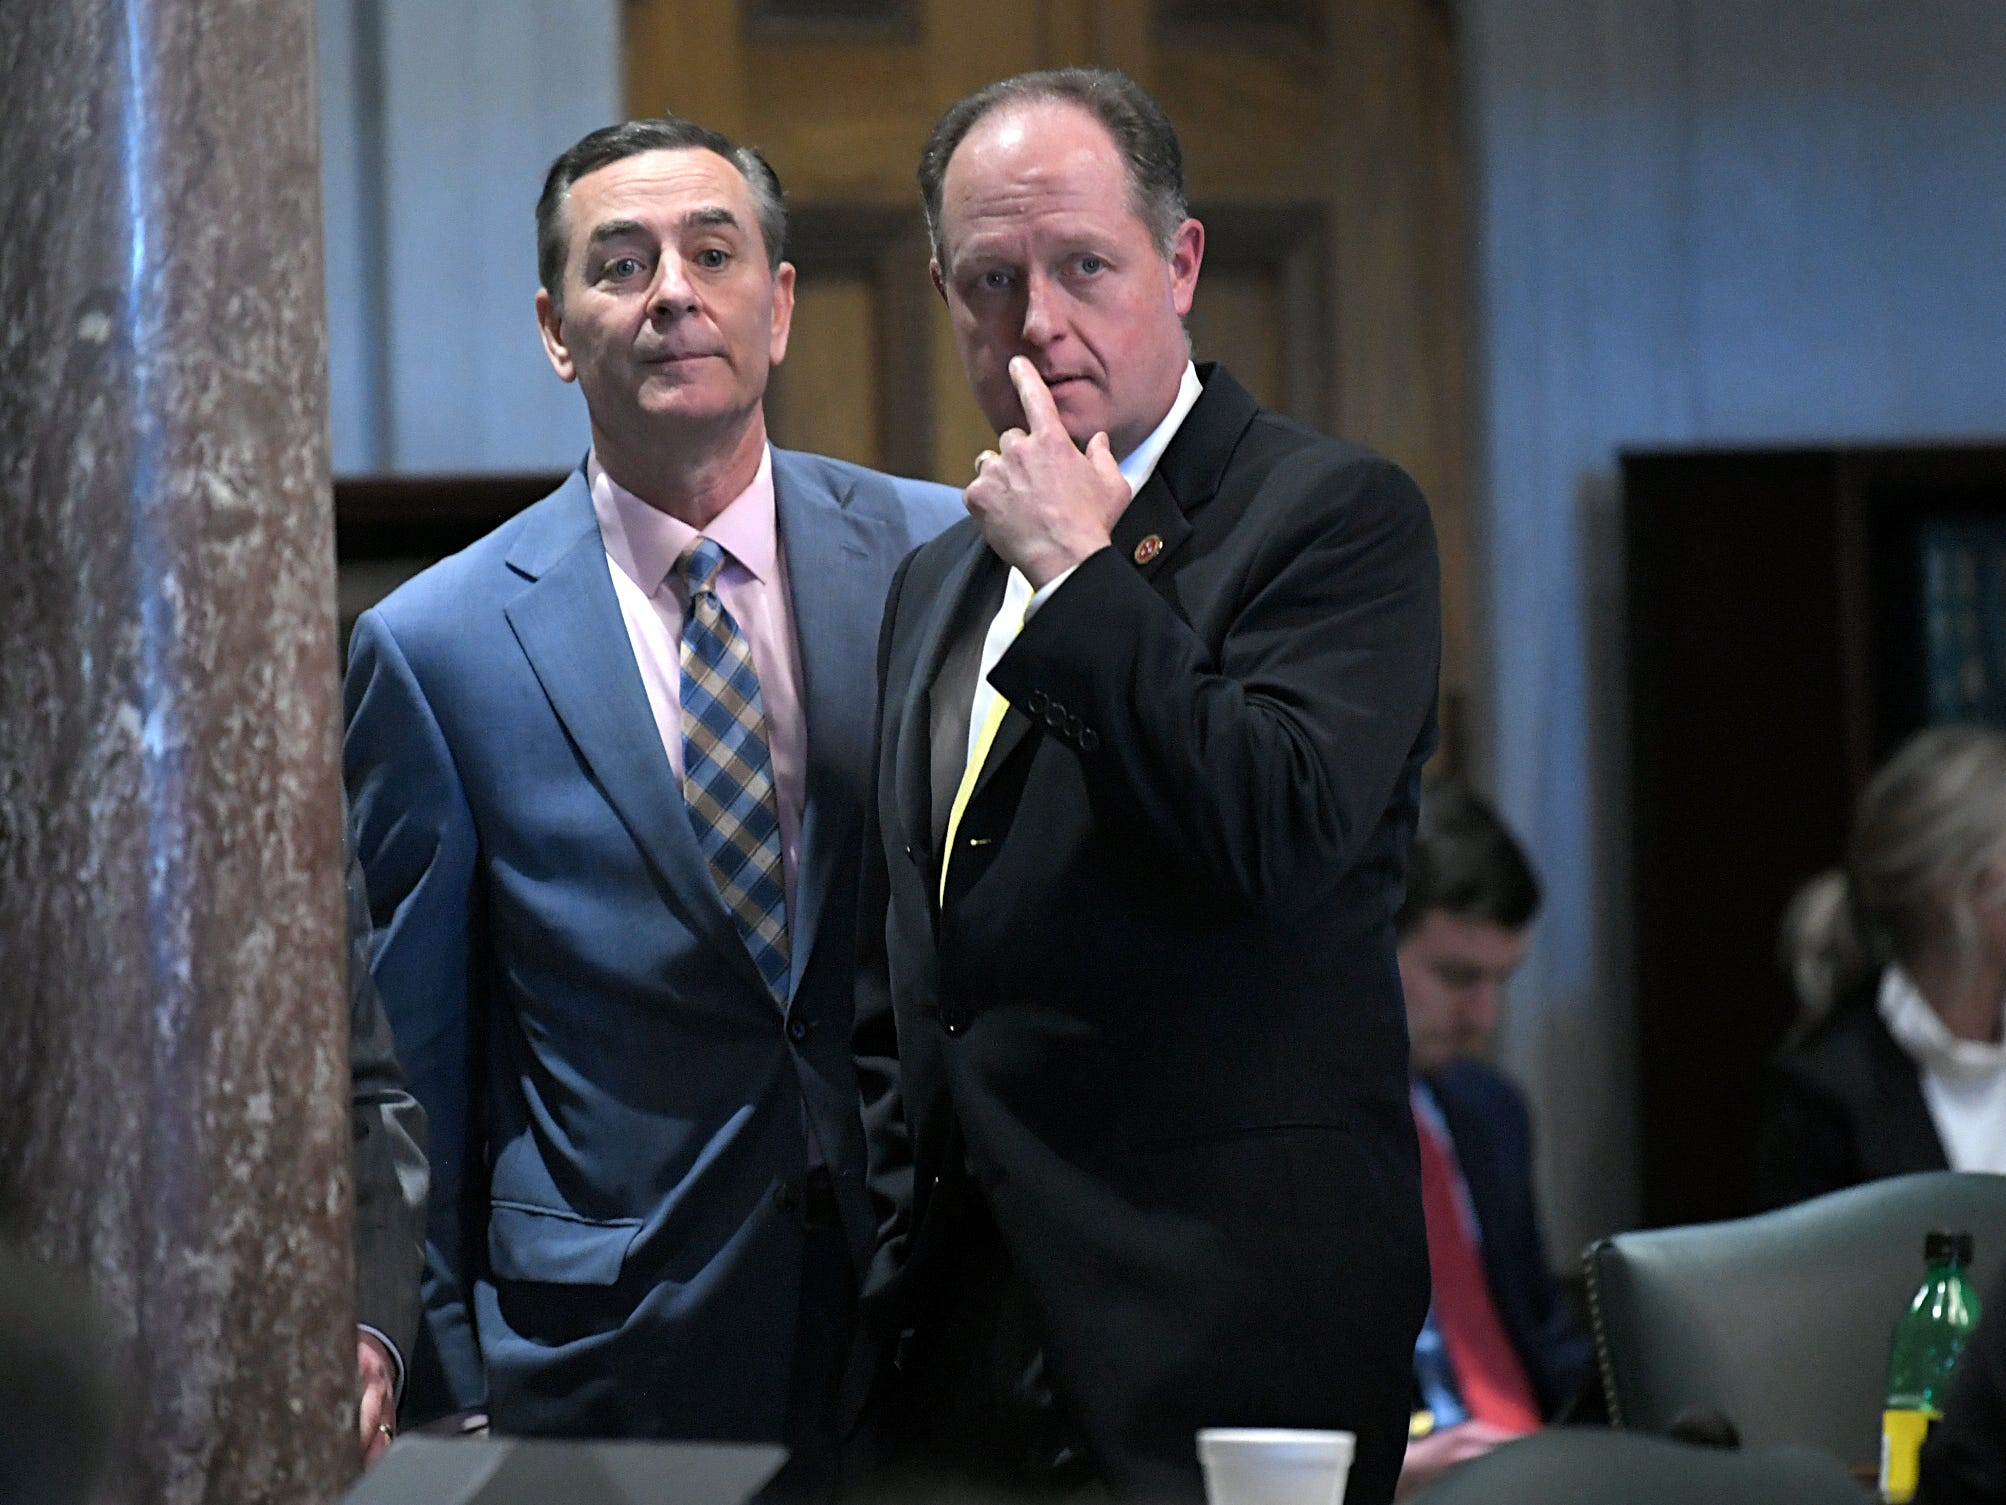 Speaker of the House Glen Casada and Senator Jack Johnson stand together in the senate after a vote on HB 939 during session in Nashville on Wednesday, May 1, 2019.